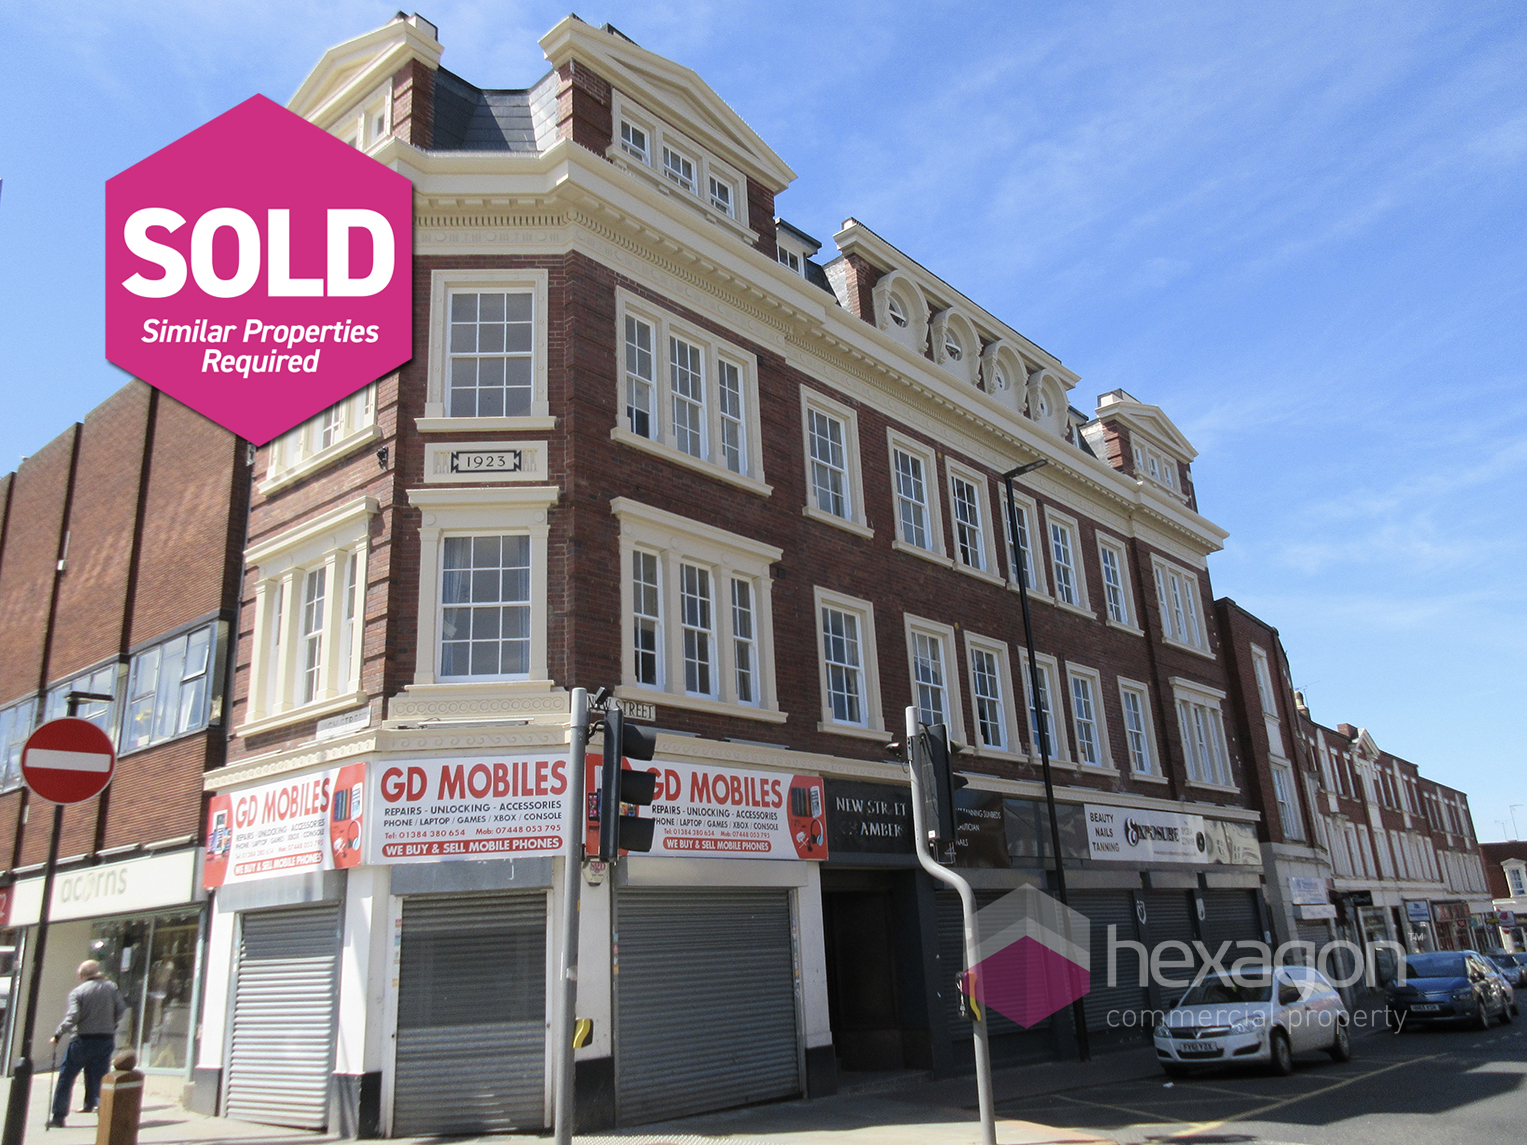 242 High Street & 1-5 New Street Dudley - Click for more details